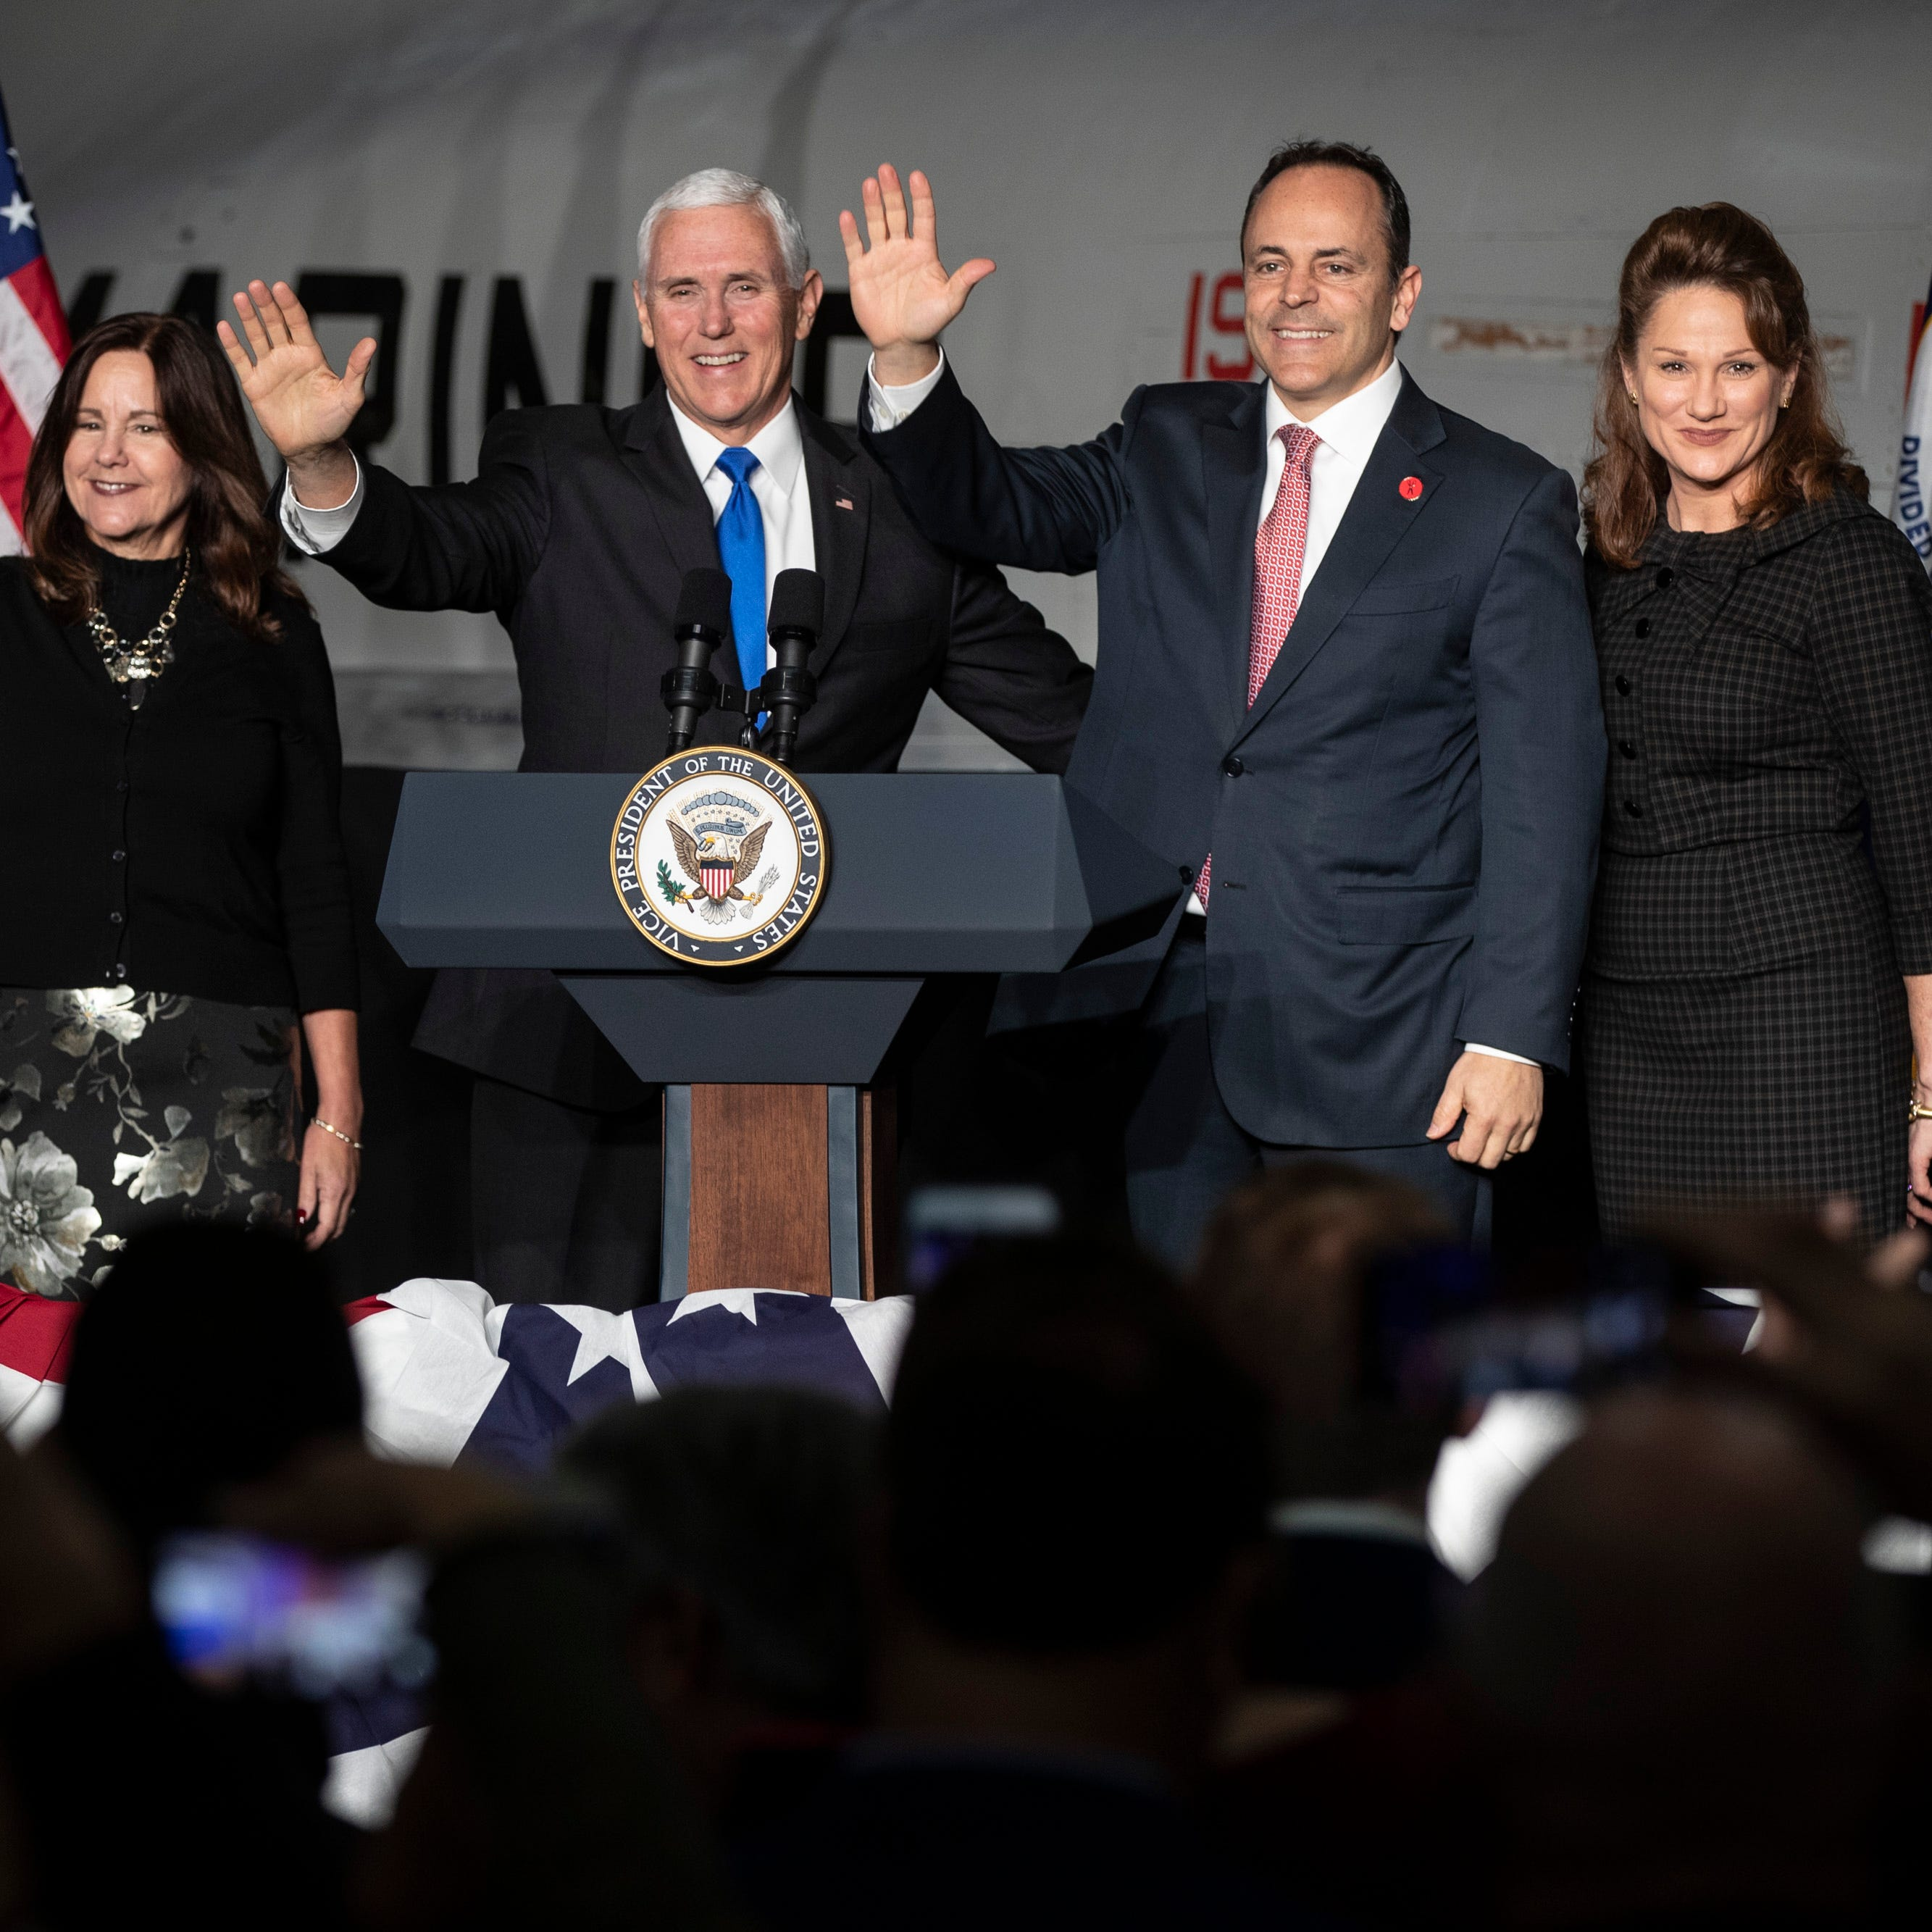 In Kentucky, Mike Pence says Matt Bevin has Trump's re-election endorsement